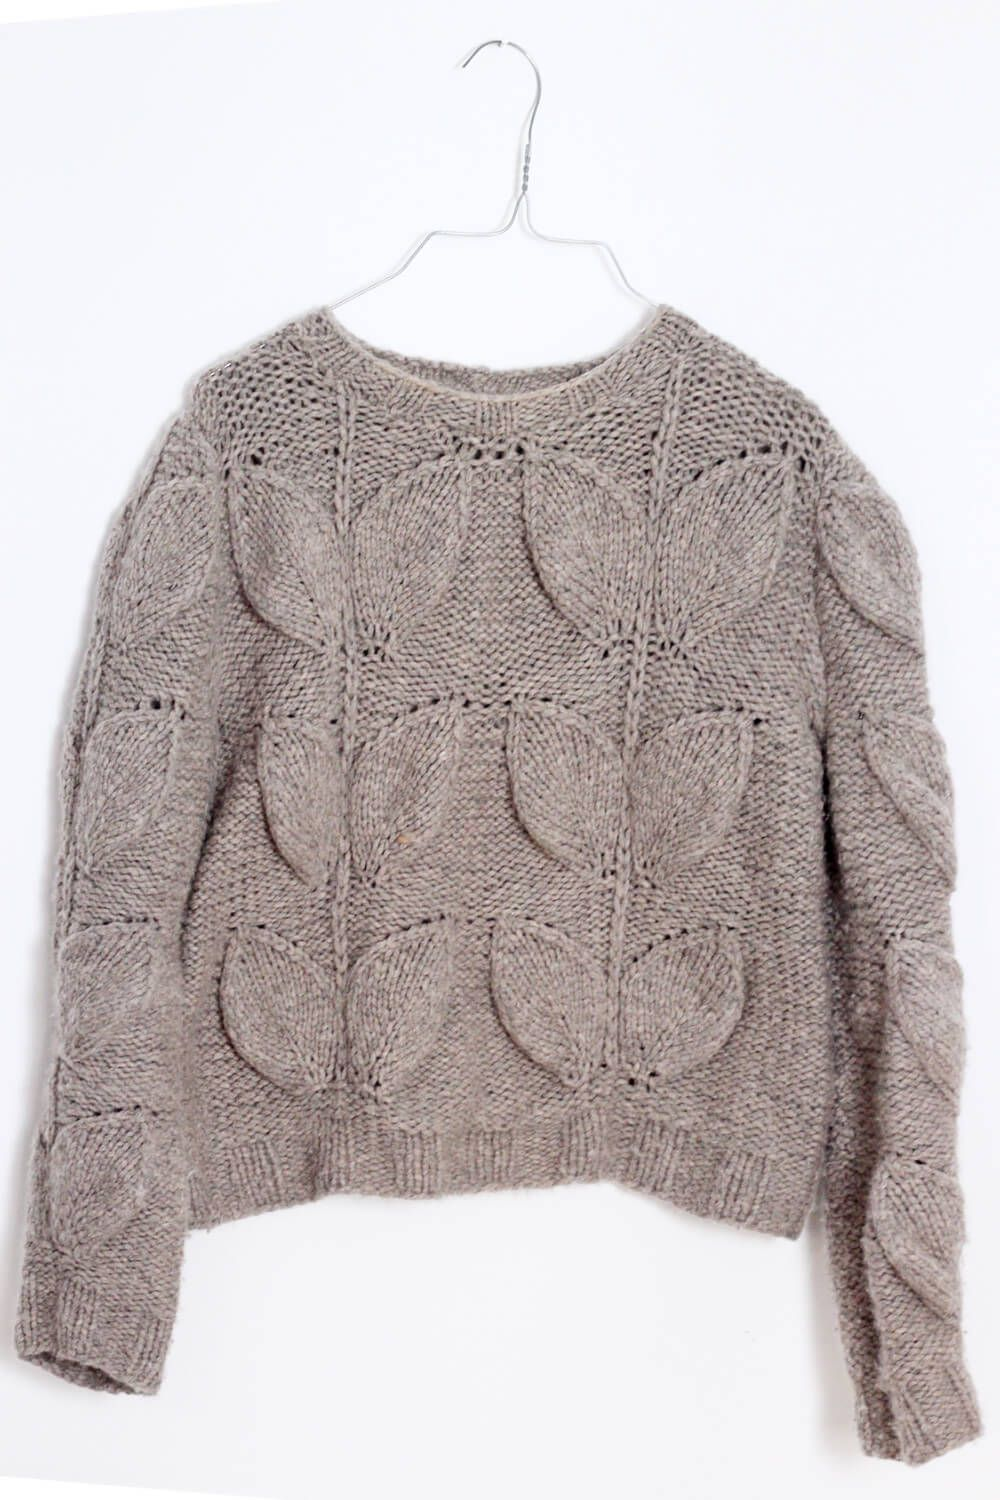 Photo of Designer Pullover mit Zopfmuster stricken: Komplette Anleitung